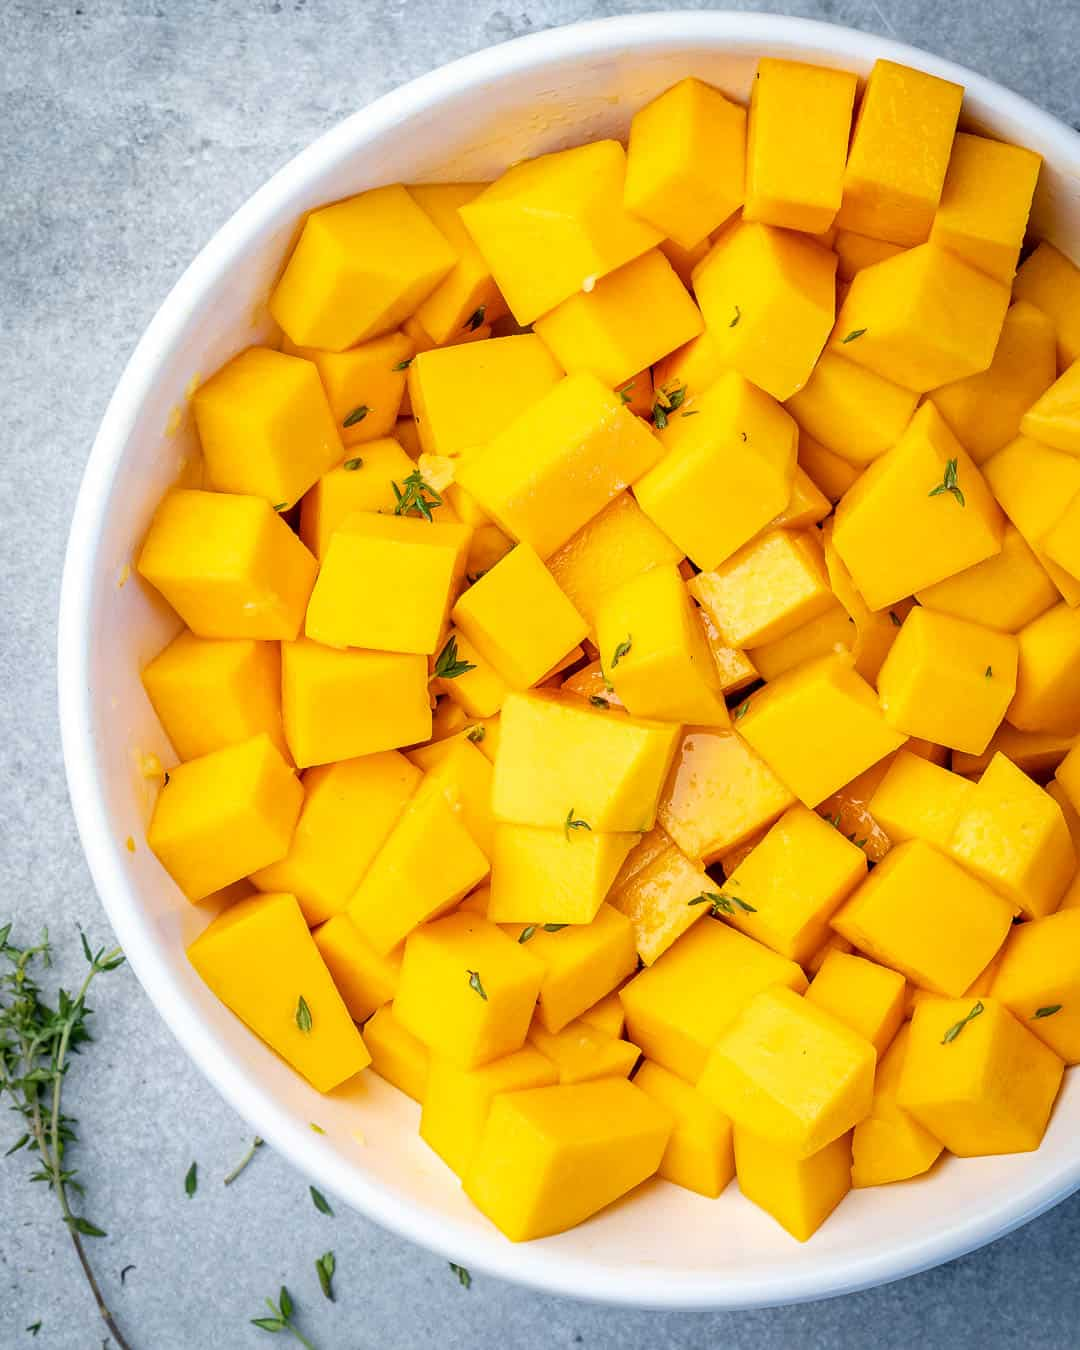 Butternut squash cubes in bowl covered in maple syrup and thyme sauce